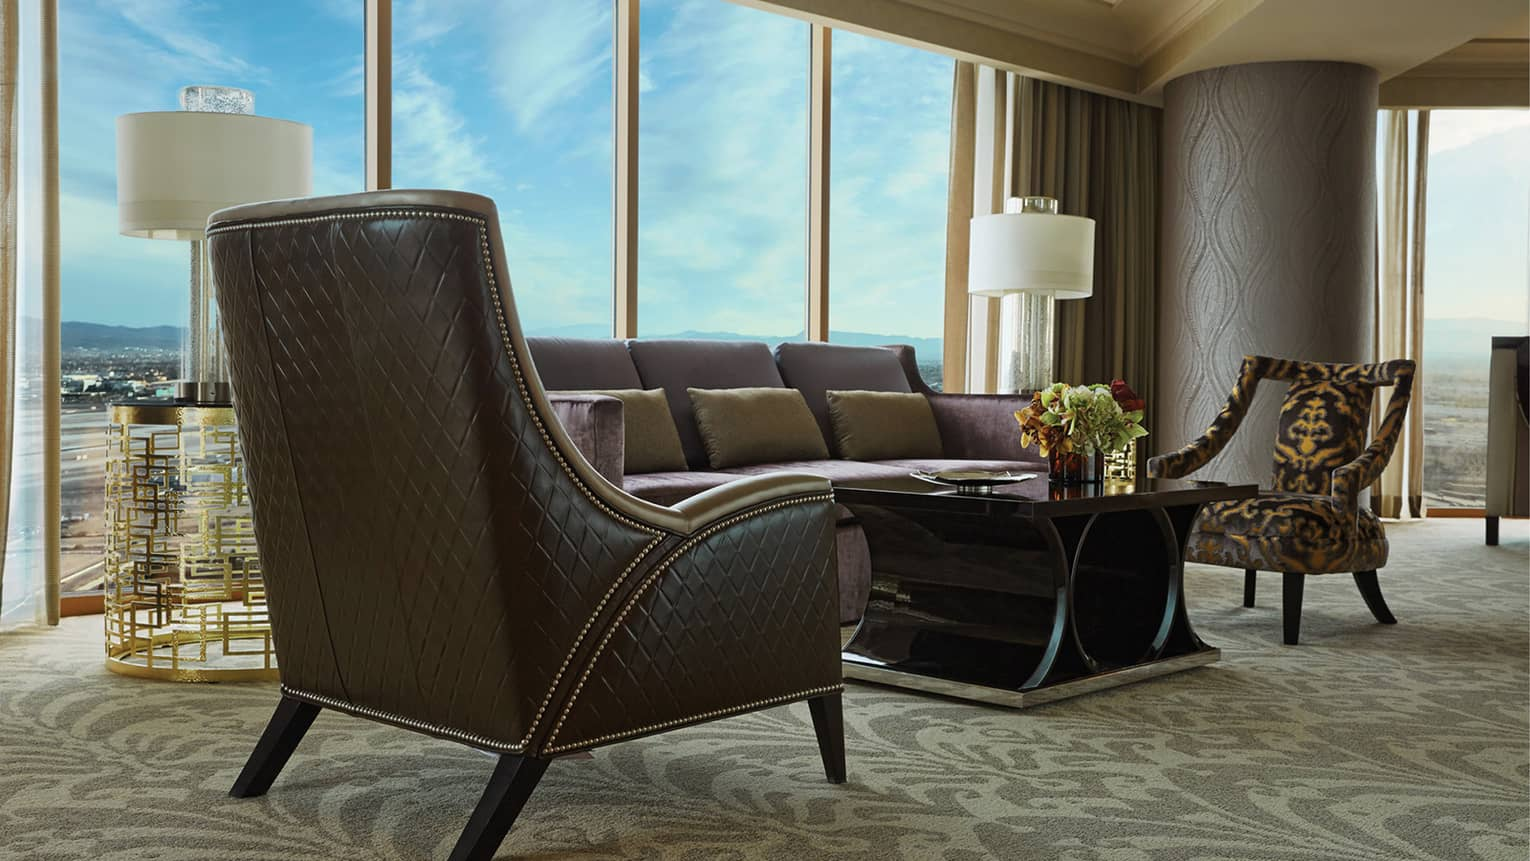 Hotel suite modern brown leather armchairs, sofa against sunny window